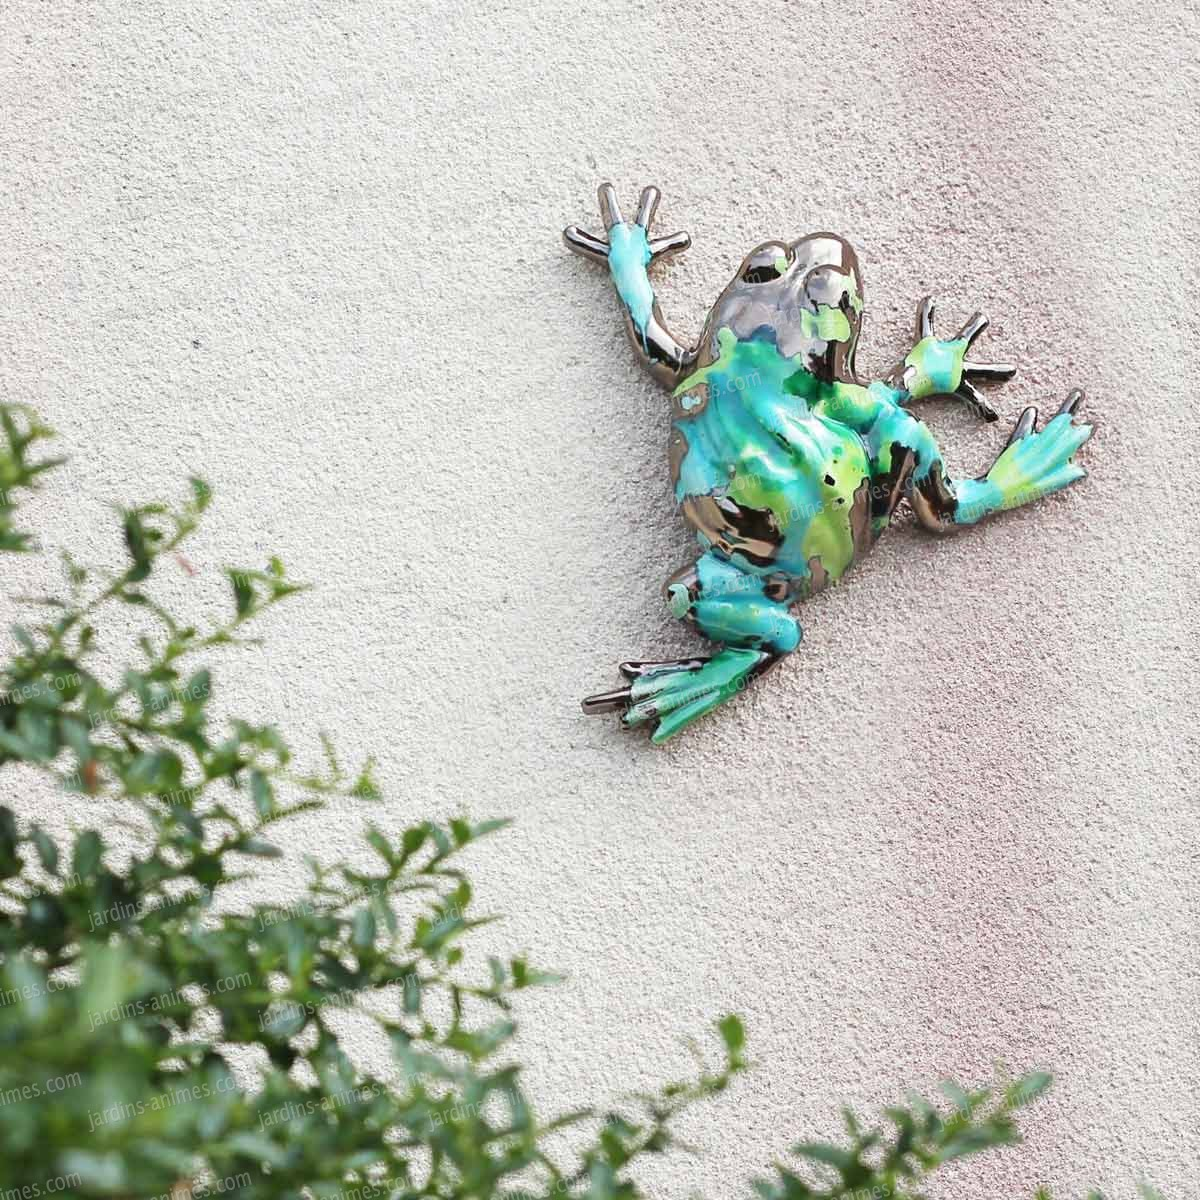 Grenouille d co en c ramique figurines d coratives for Grenouille jardin deco